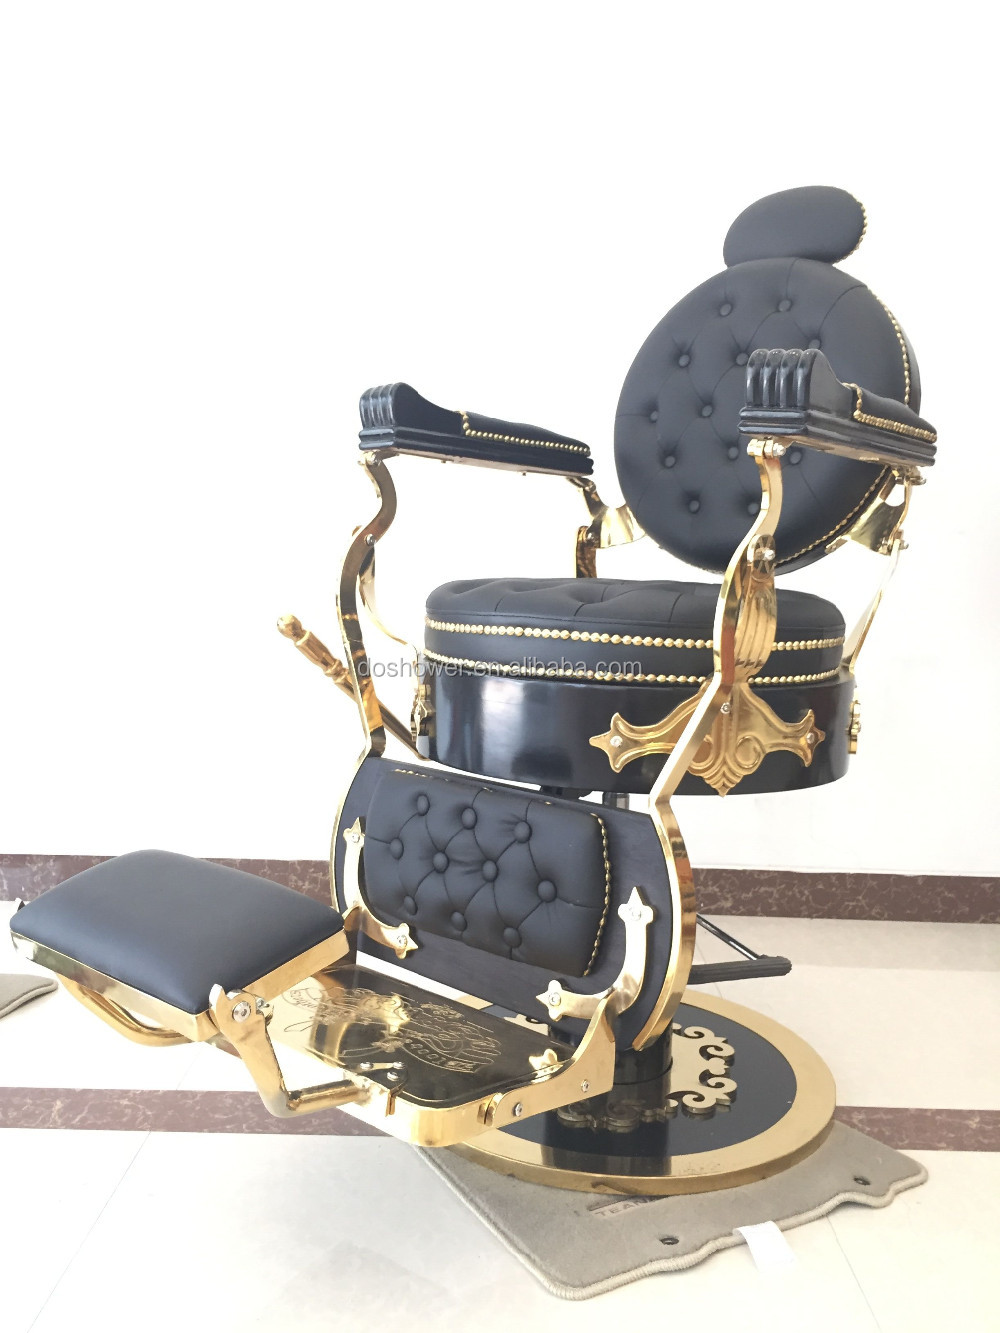 Doshower beauty salon furniture used haircut chair barber chairs for sale